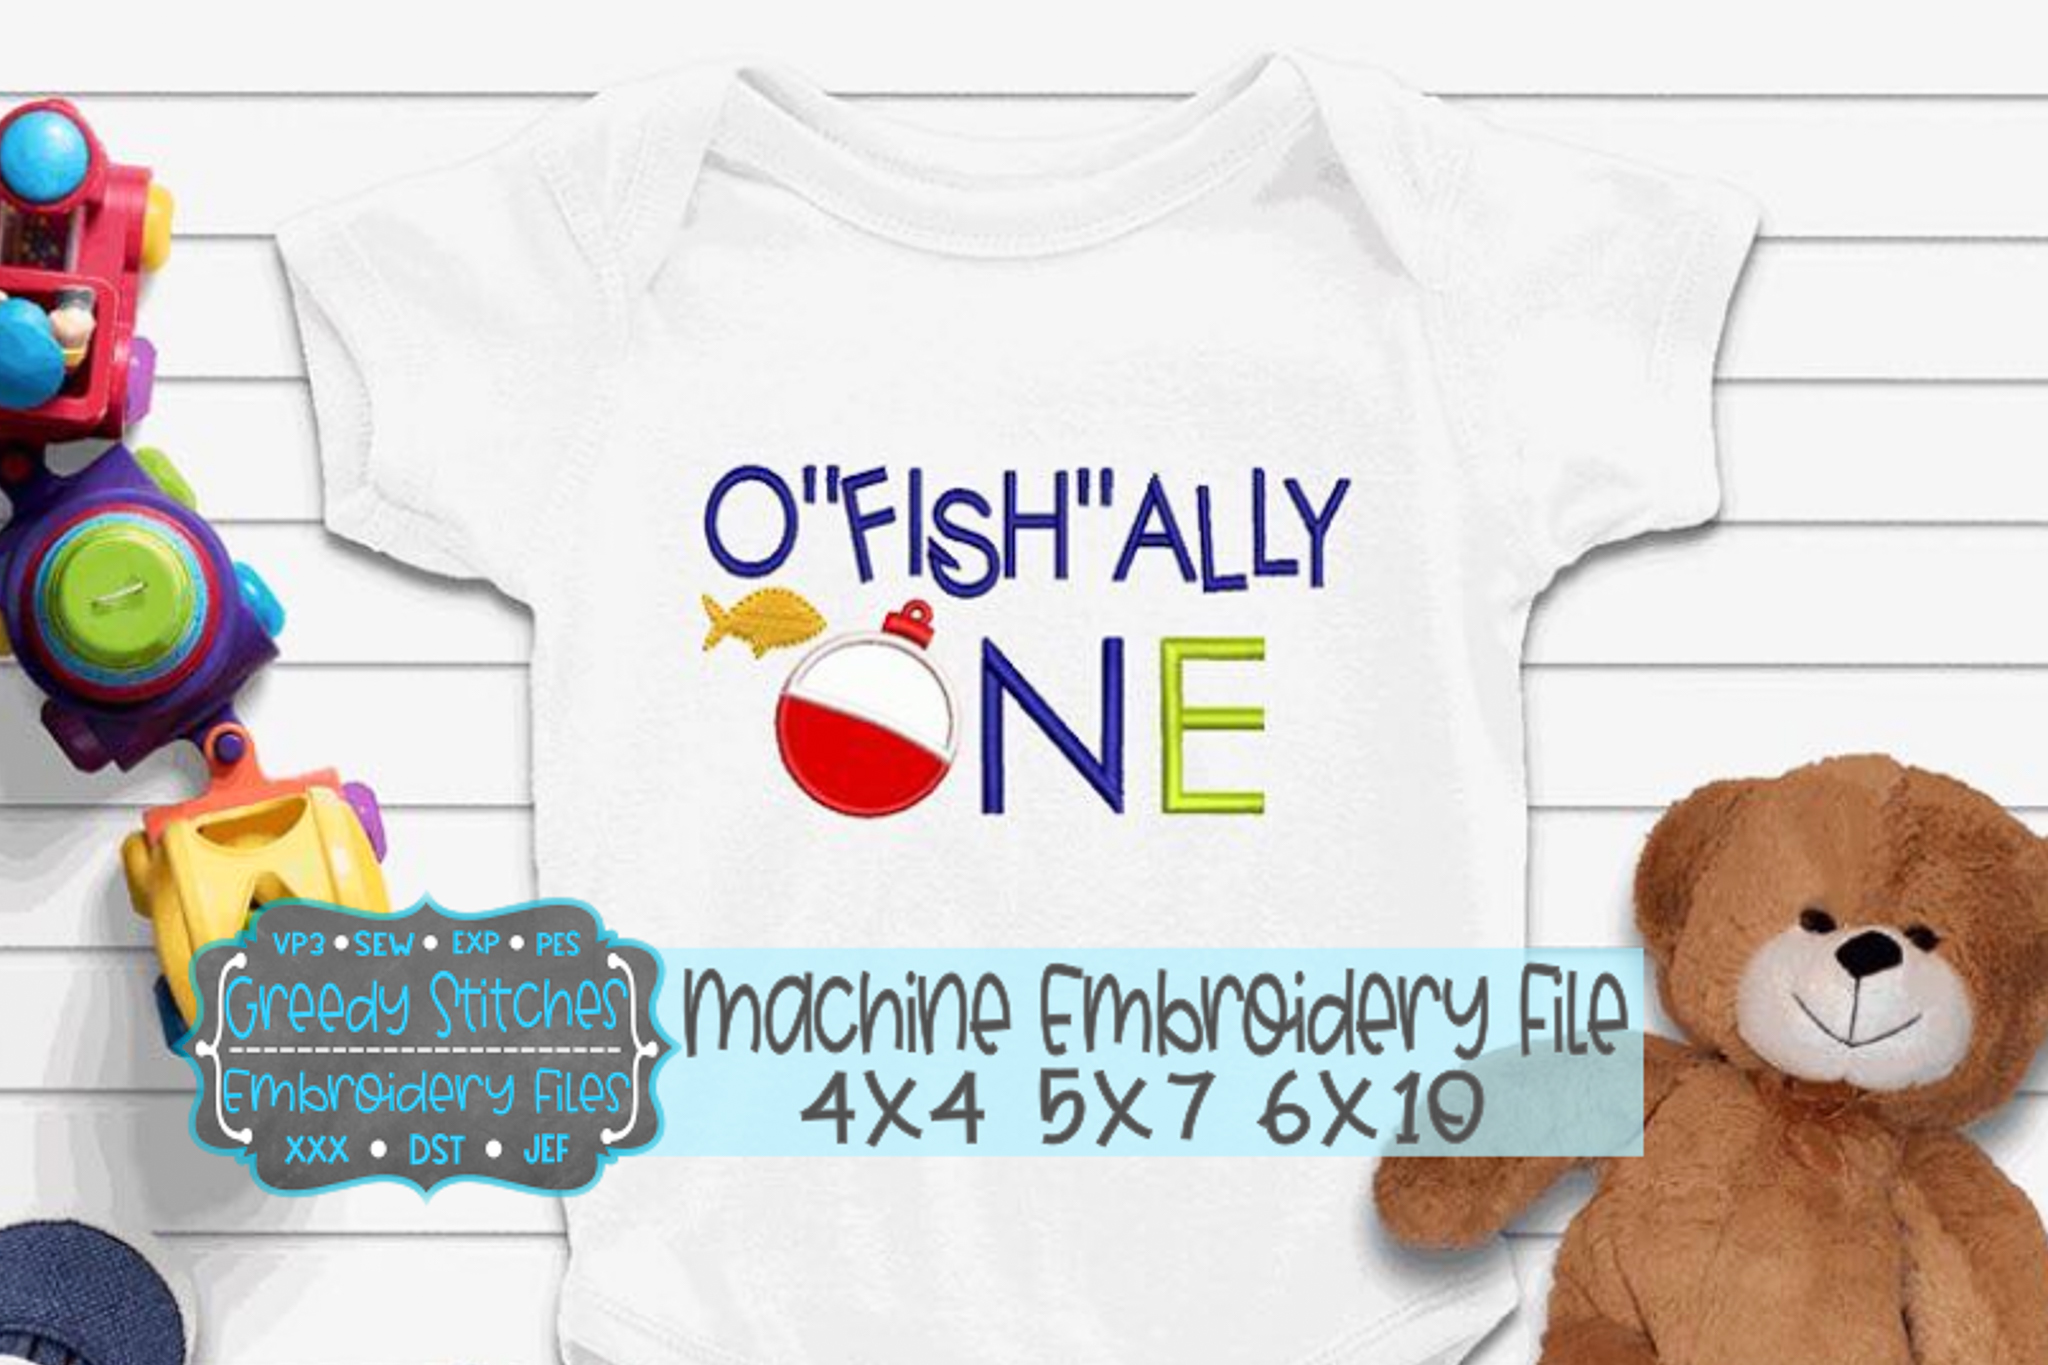 O'FISH'ALLY ONE Machne Embroidery Files example image 1